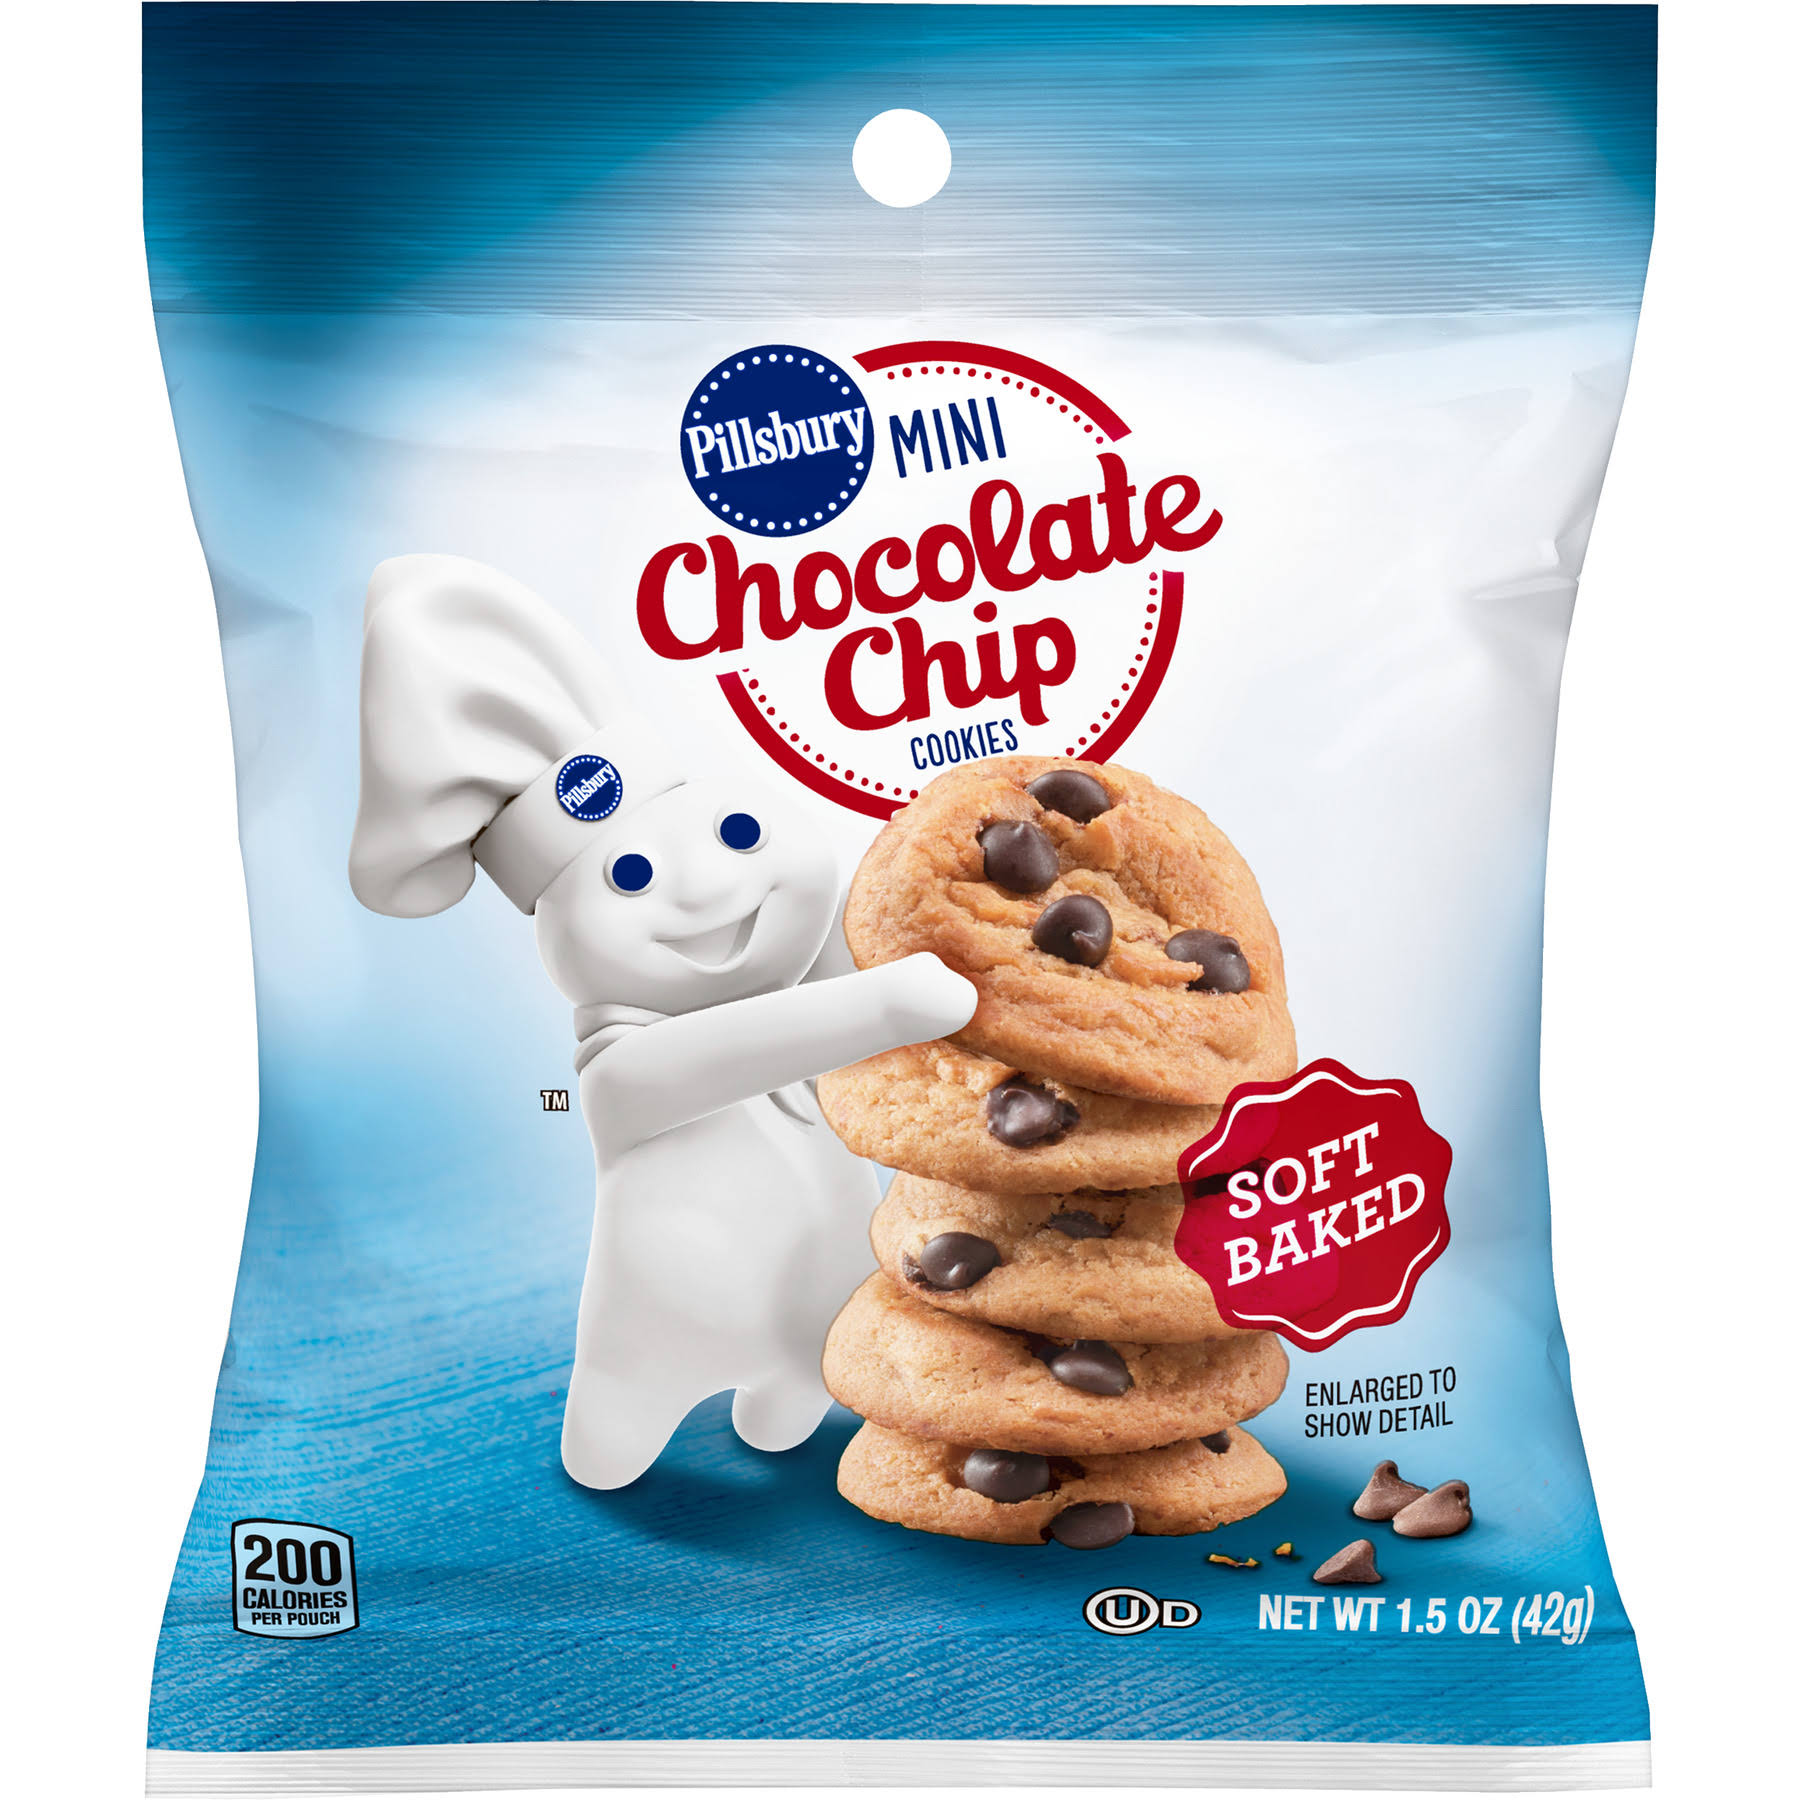 Pillsbury Mini Chocolate Chip Cookies